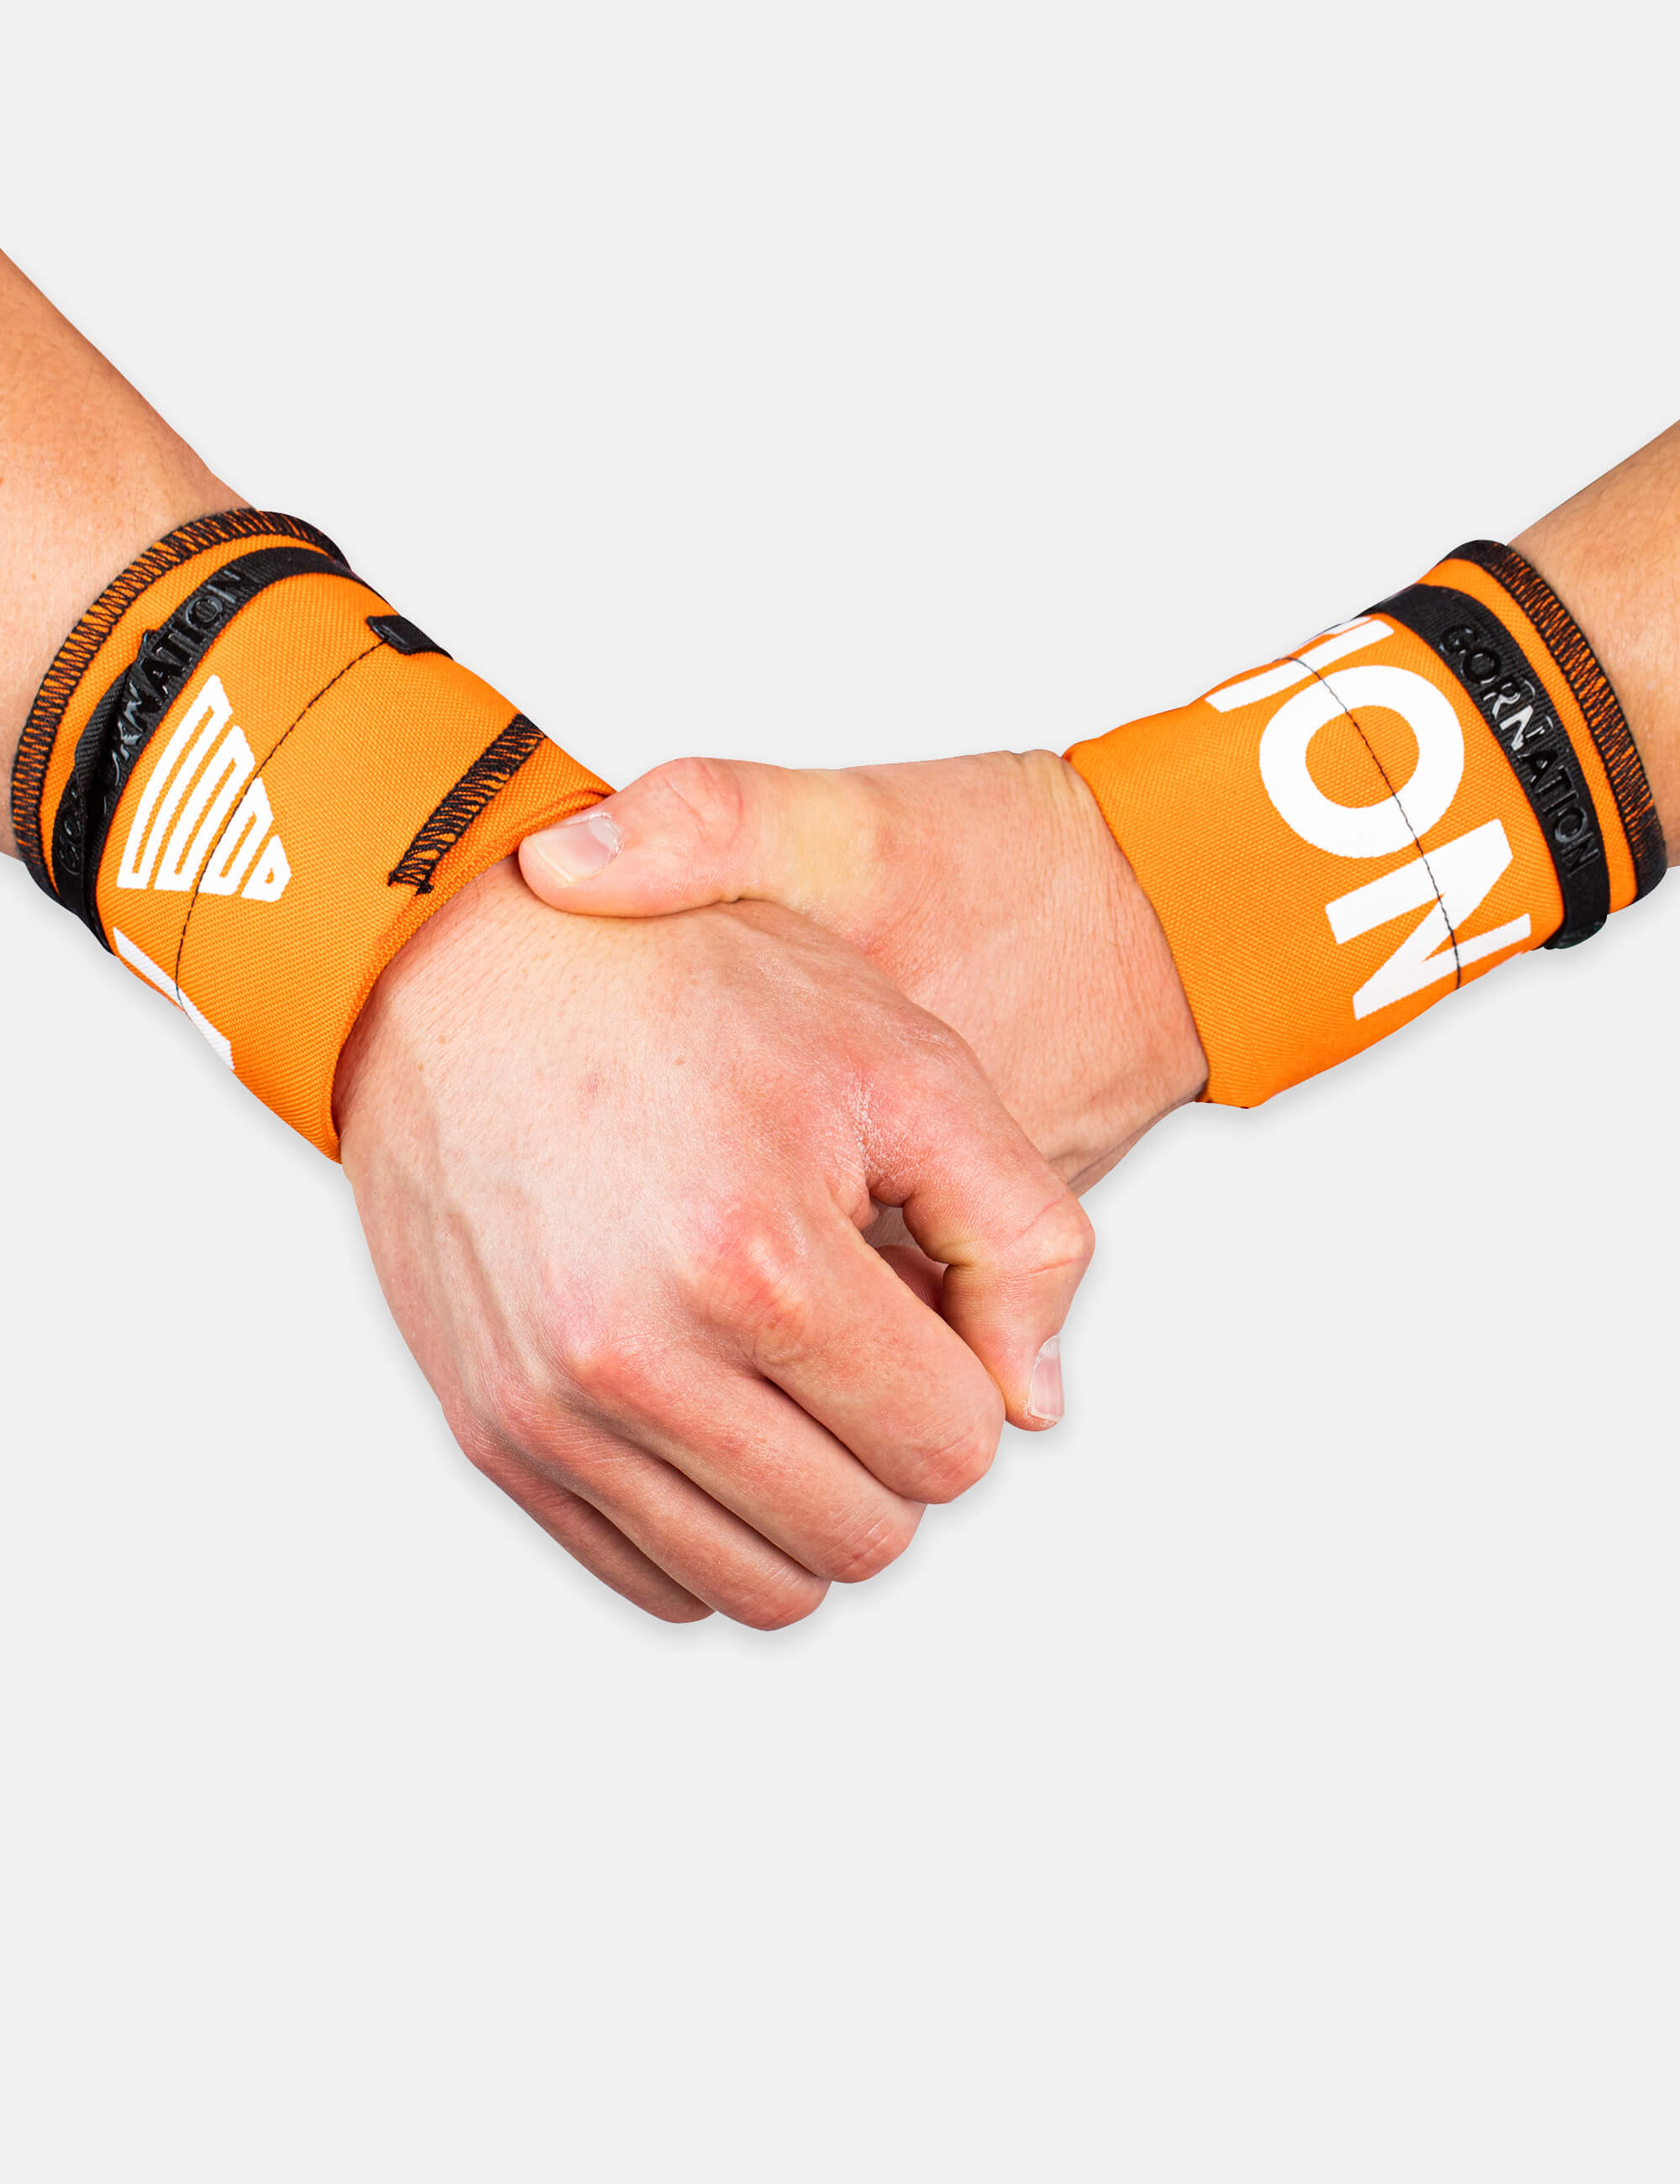 Orange Gornation Wrist wraps with tight fit, adjustable wristband for wrist support and injury prevention